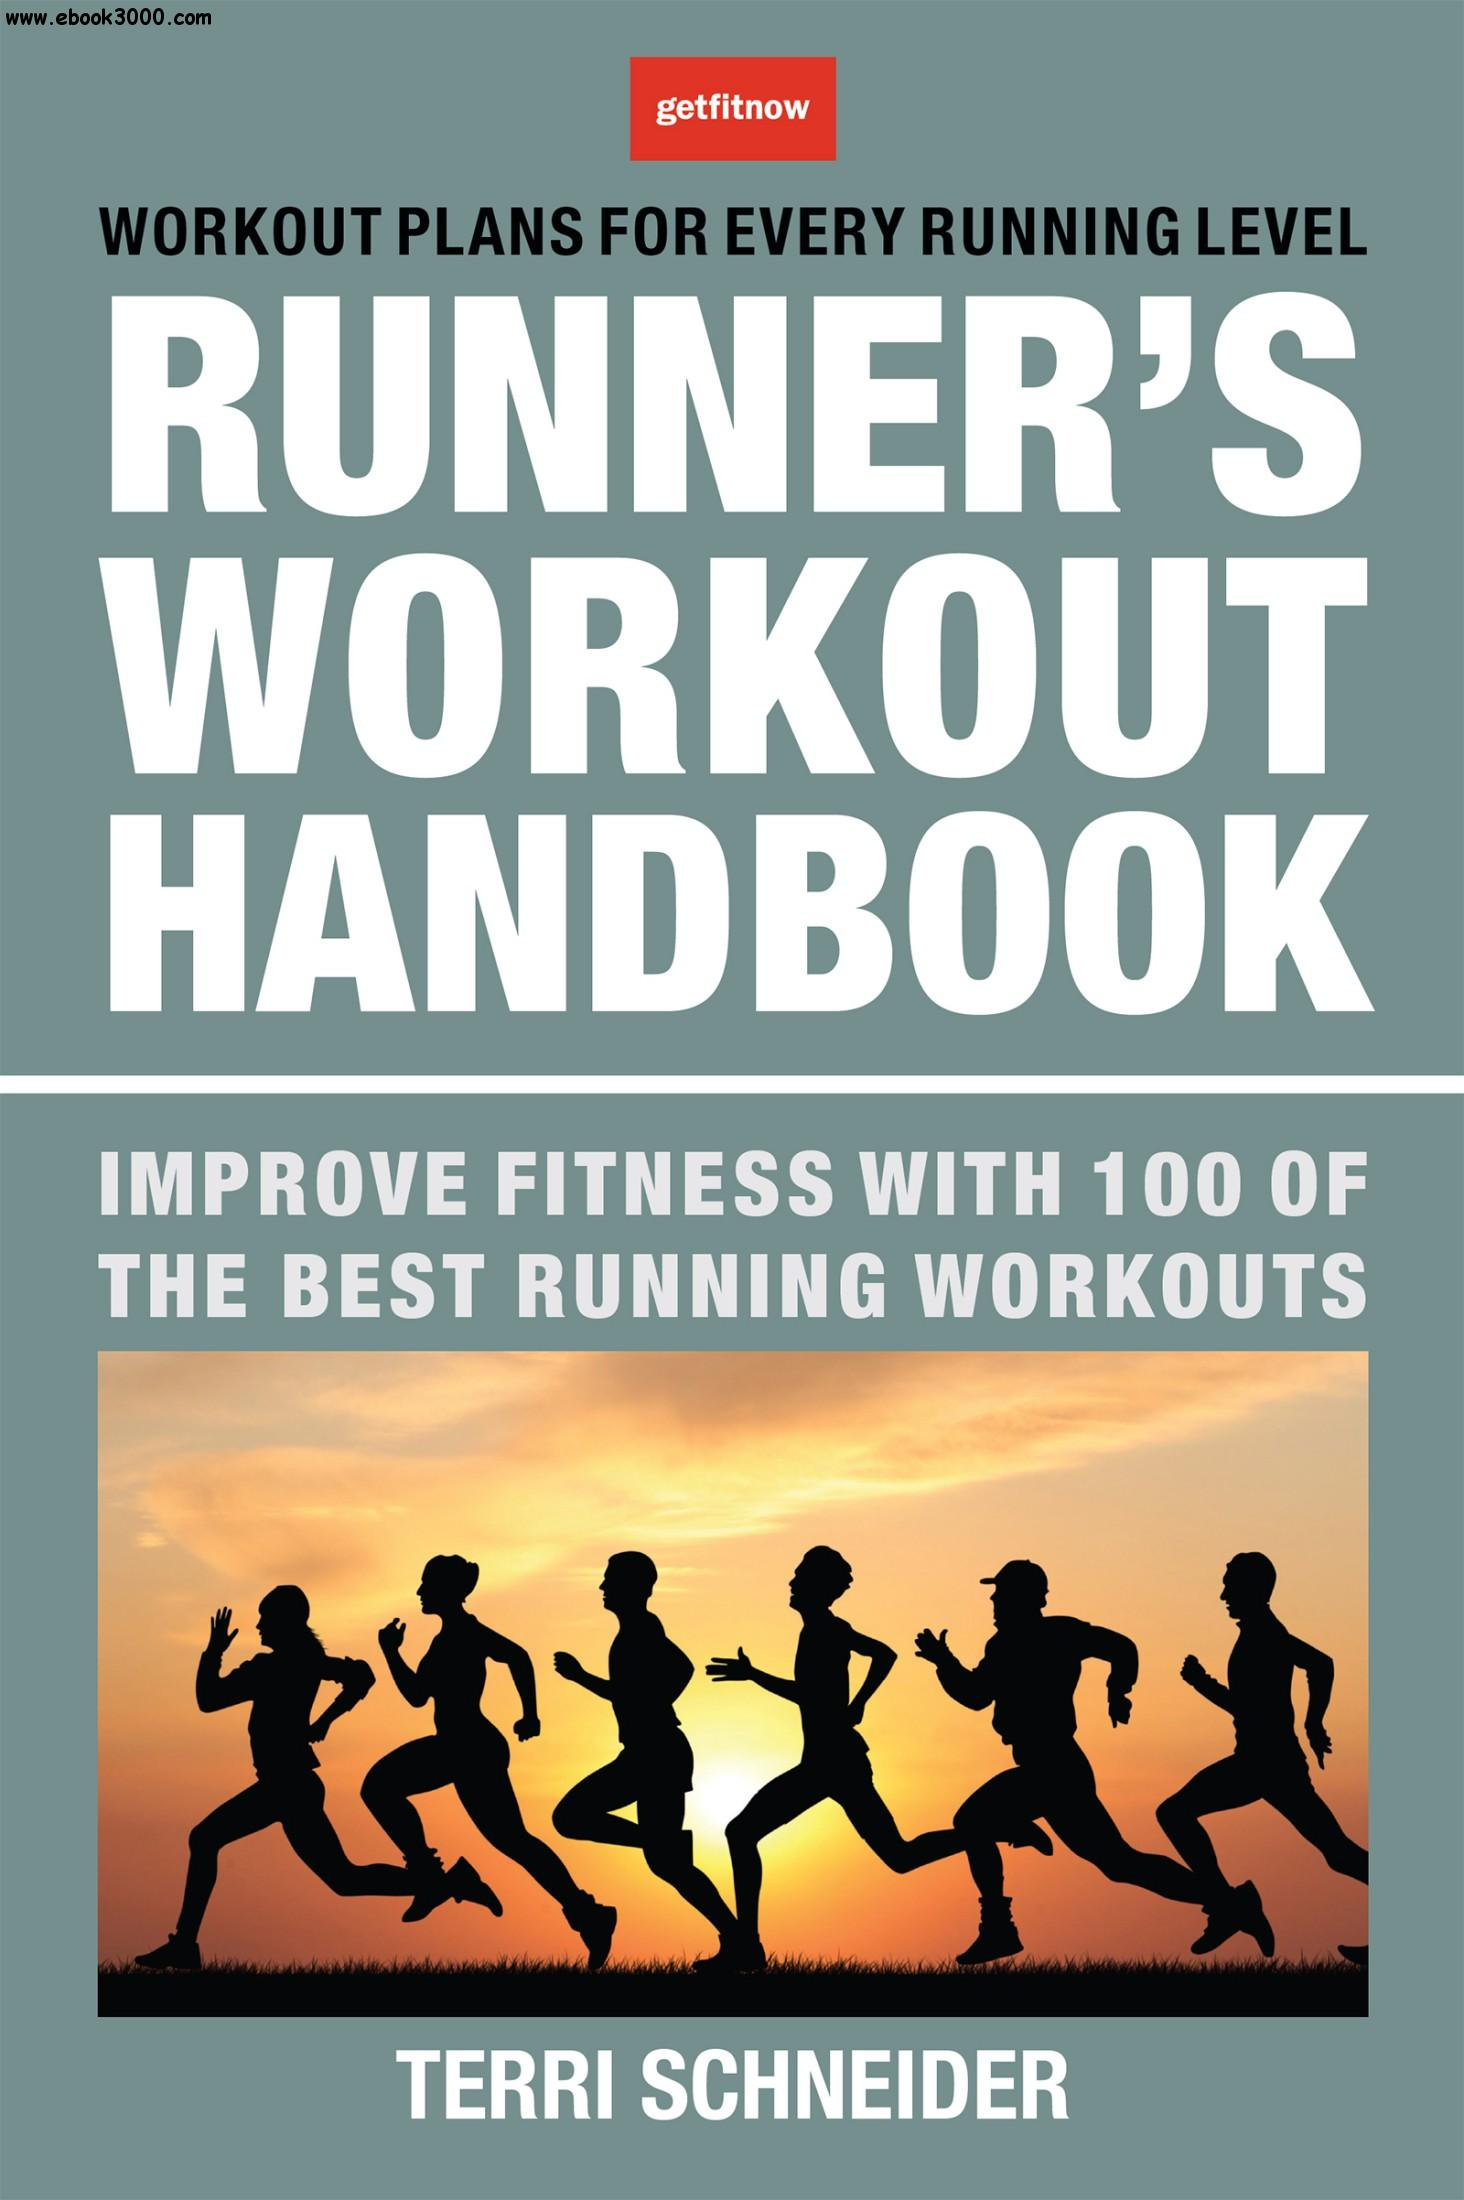 The Runner's Workout Handbook: Improve Fitness with 100 of the Best Running Workouts